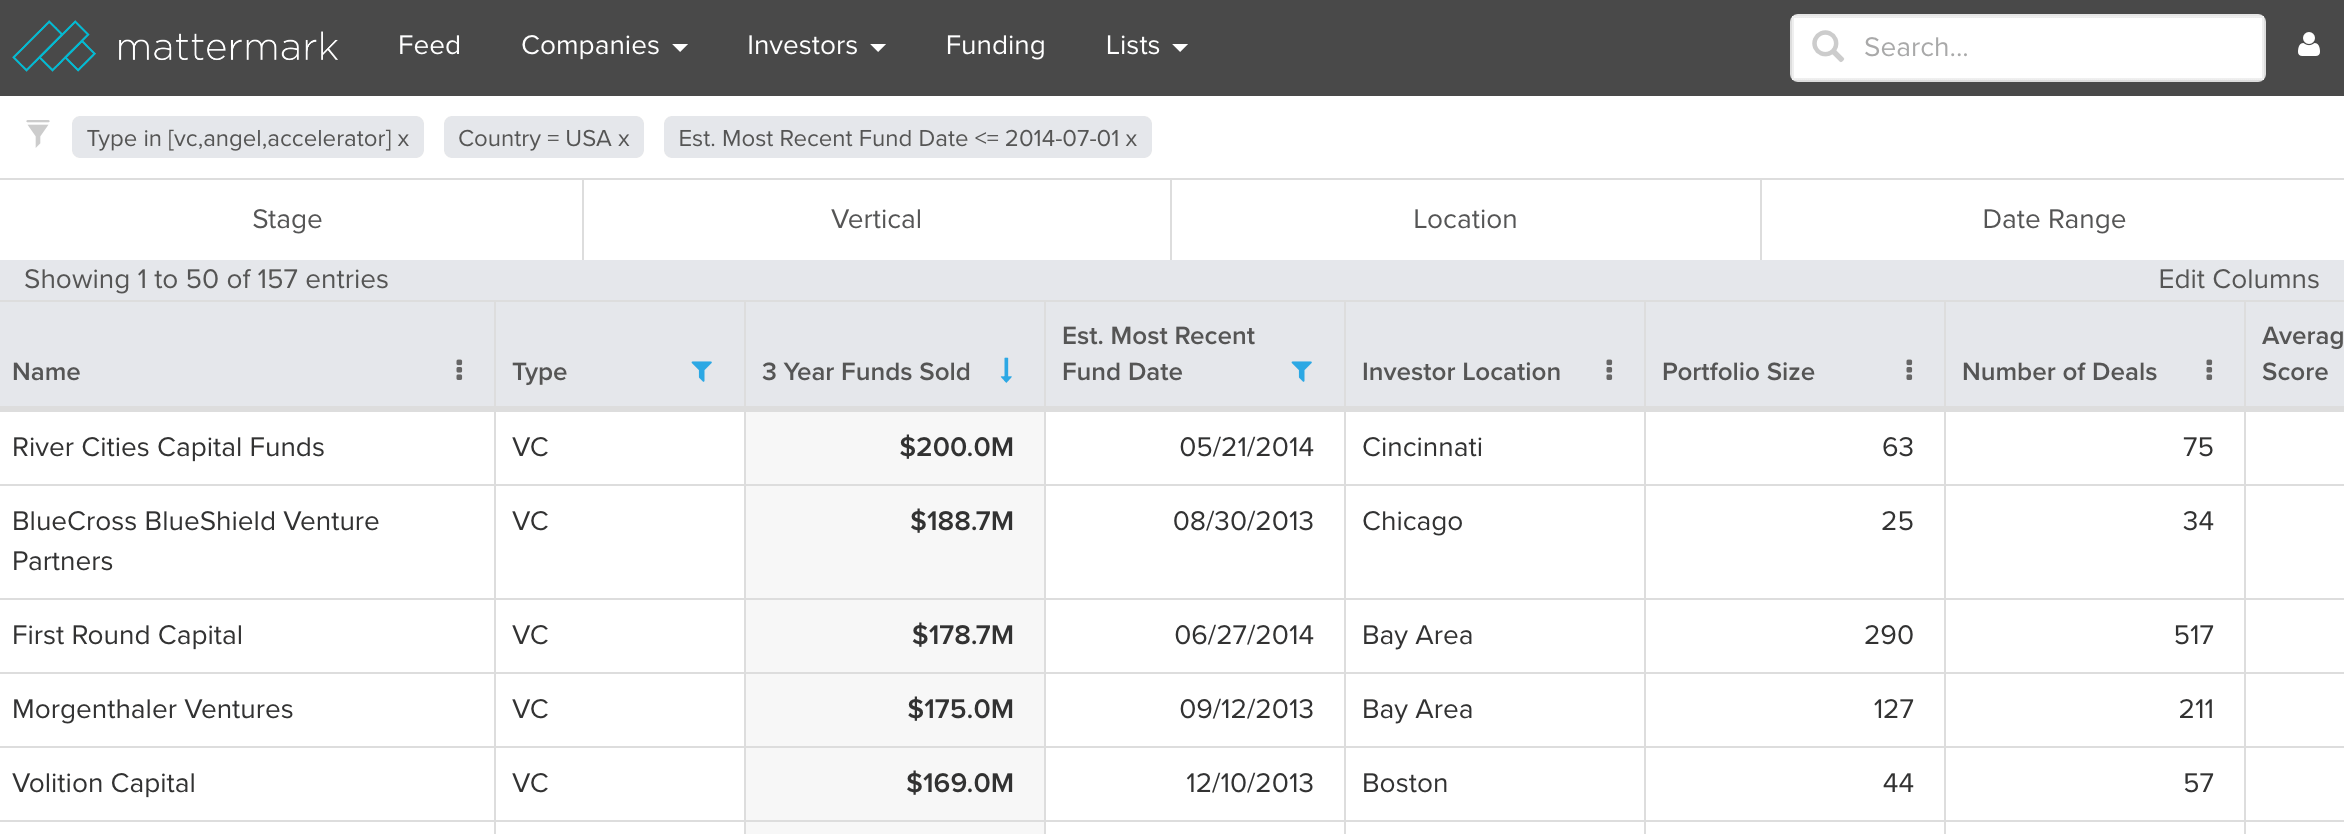 Mattermark-investor-search-results